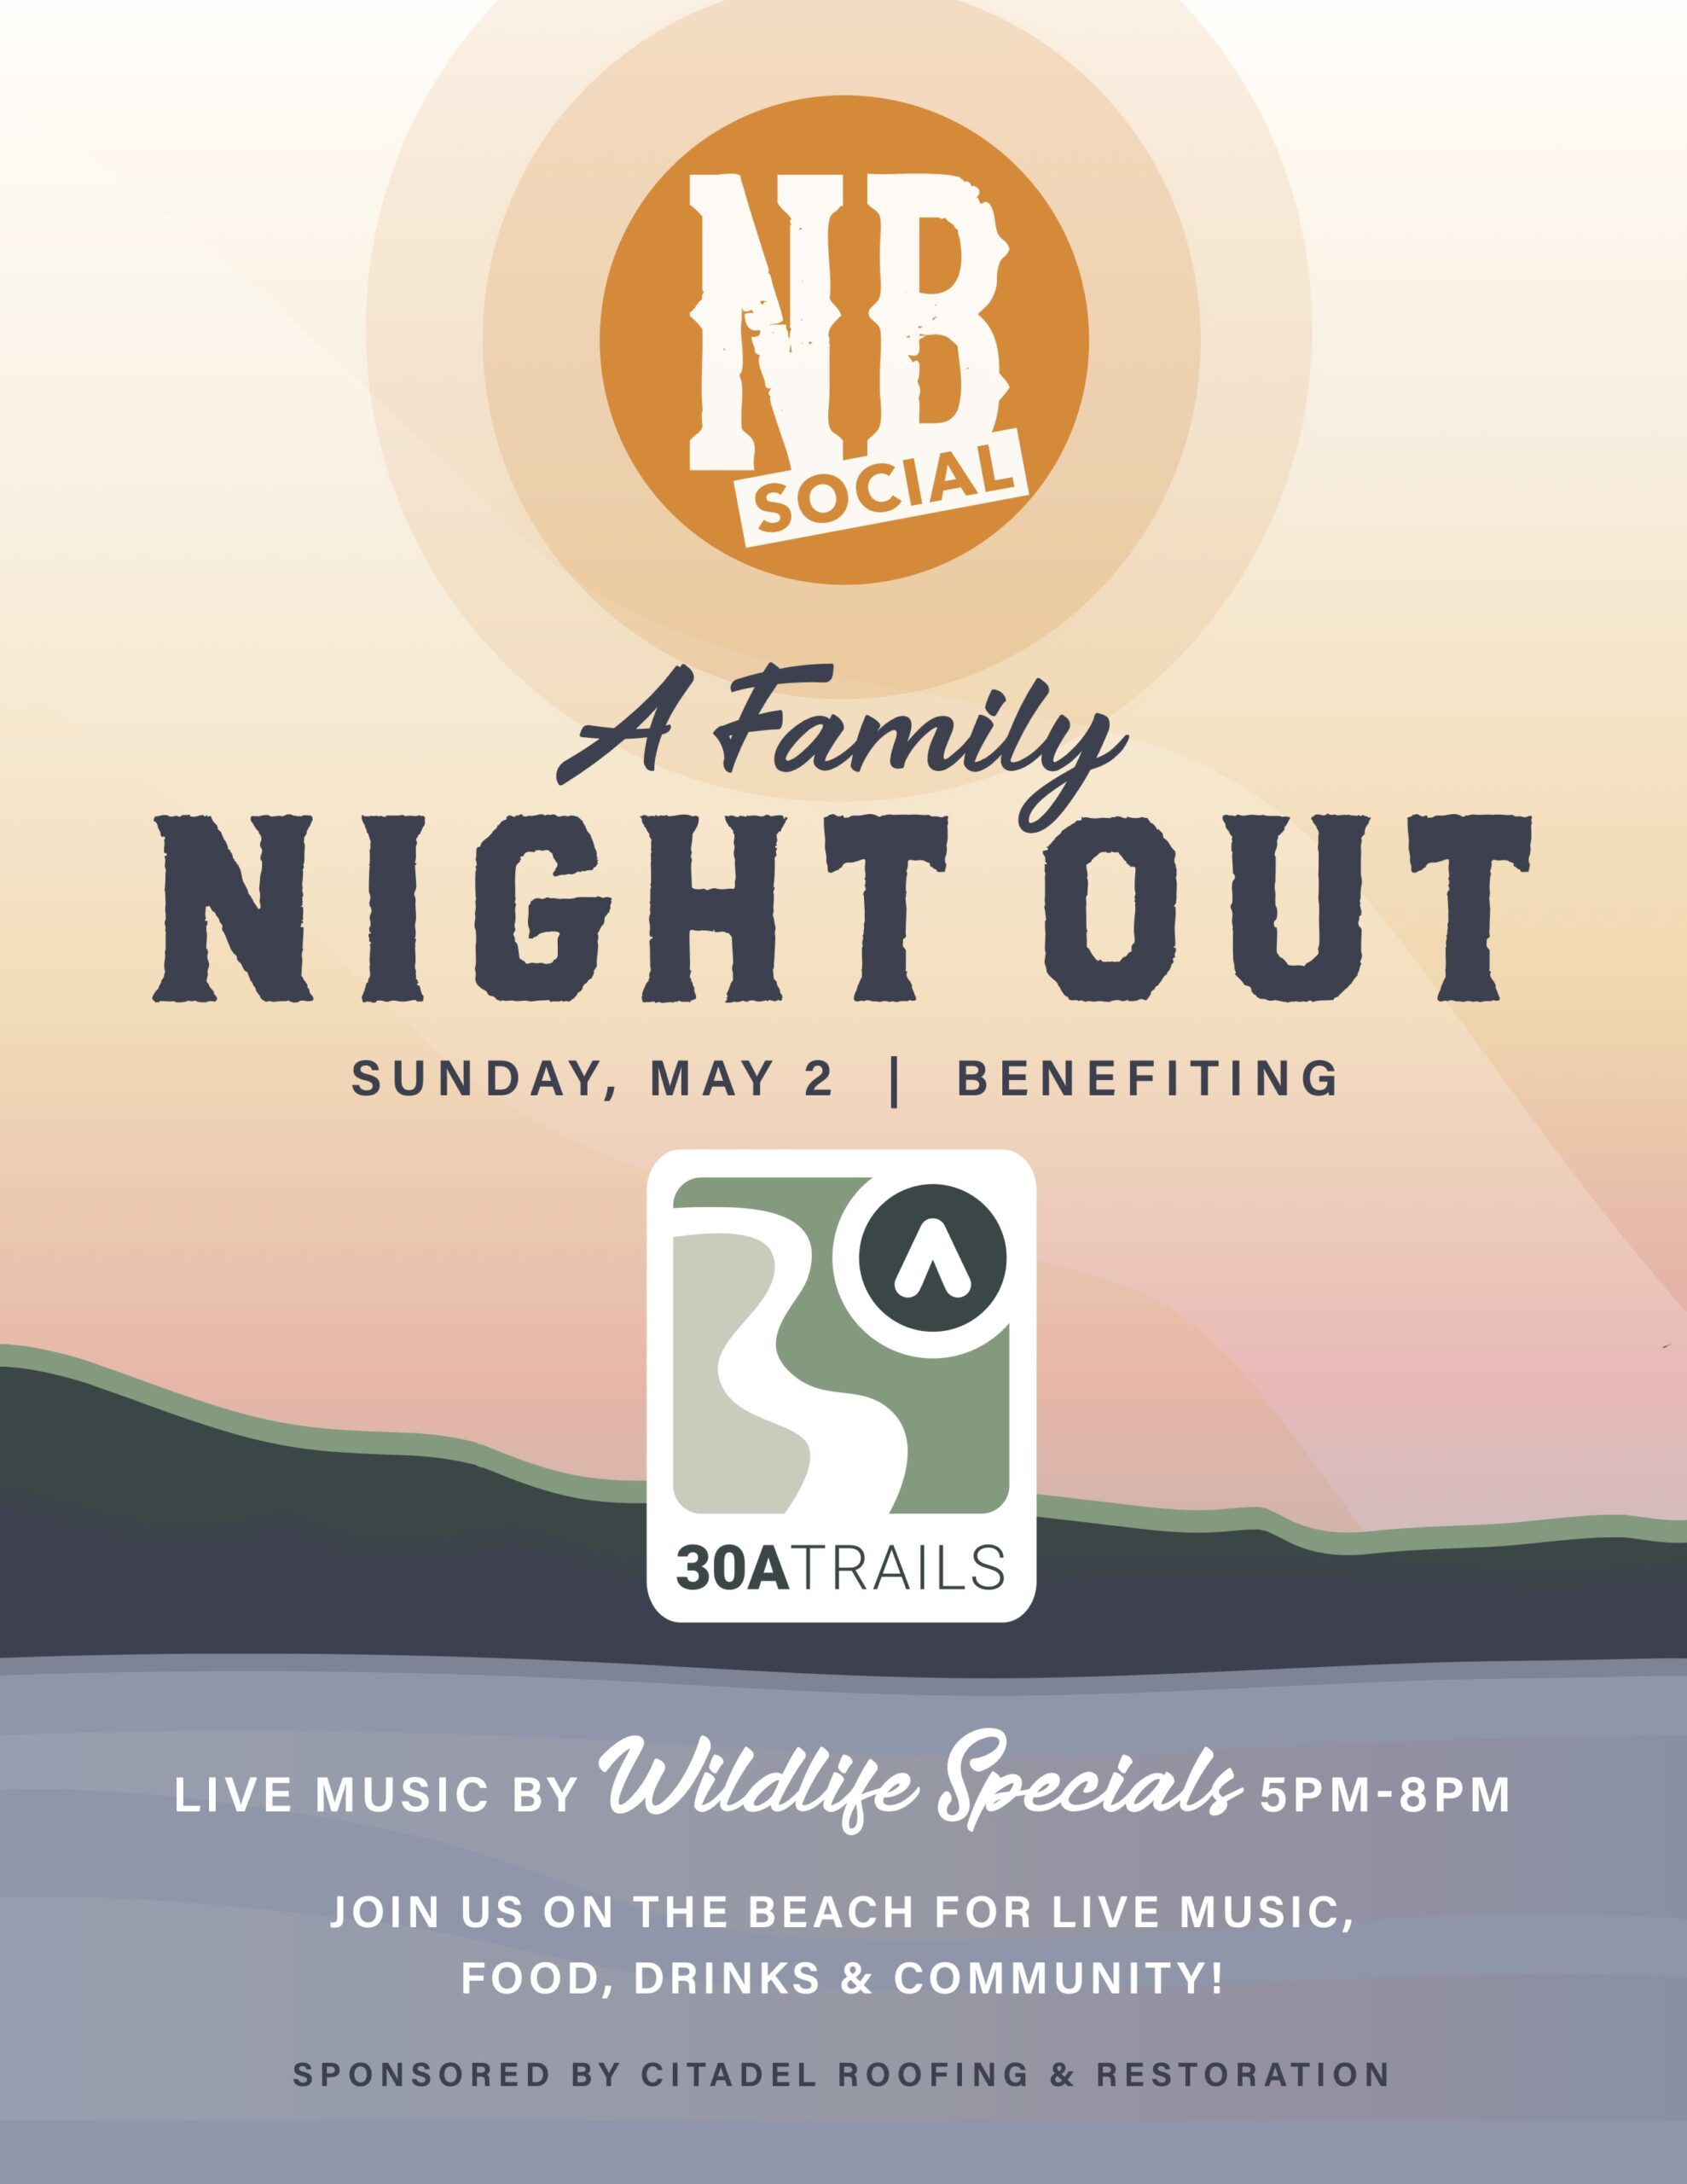 North Beach Social Hosts 'A Family Night Out' Benefitting 30A Trails